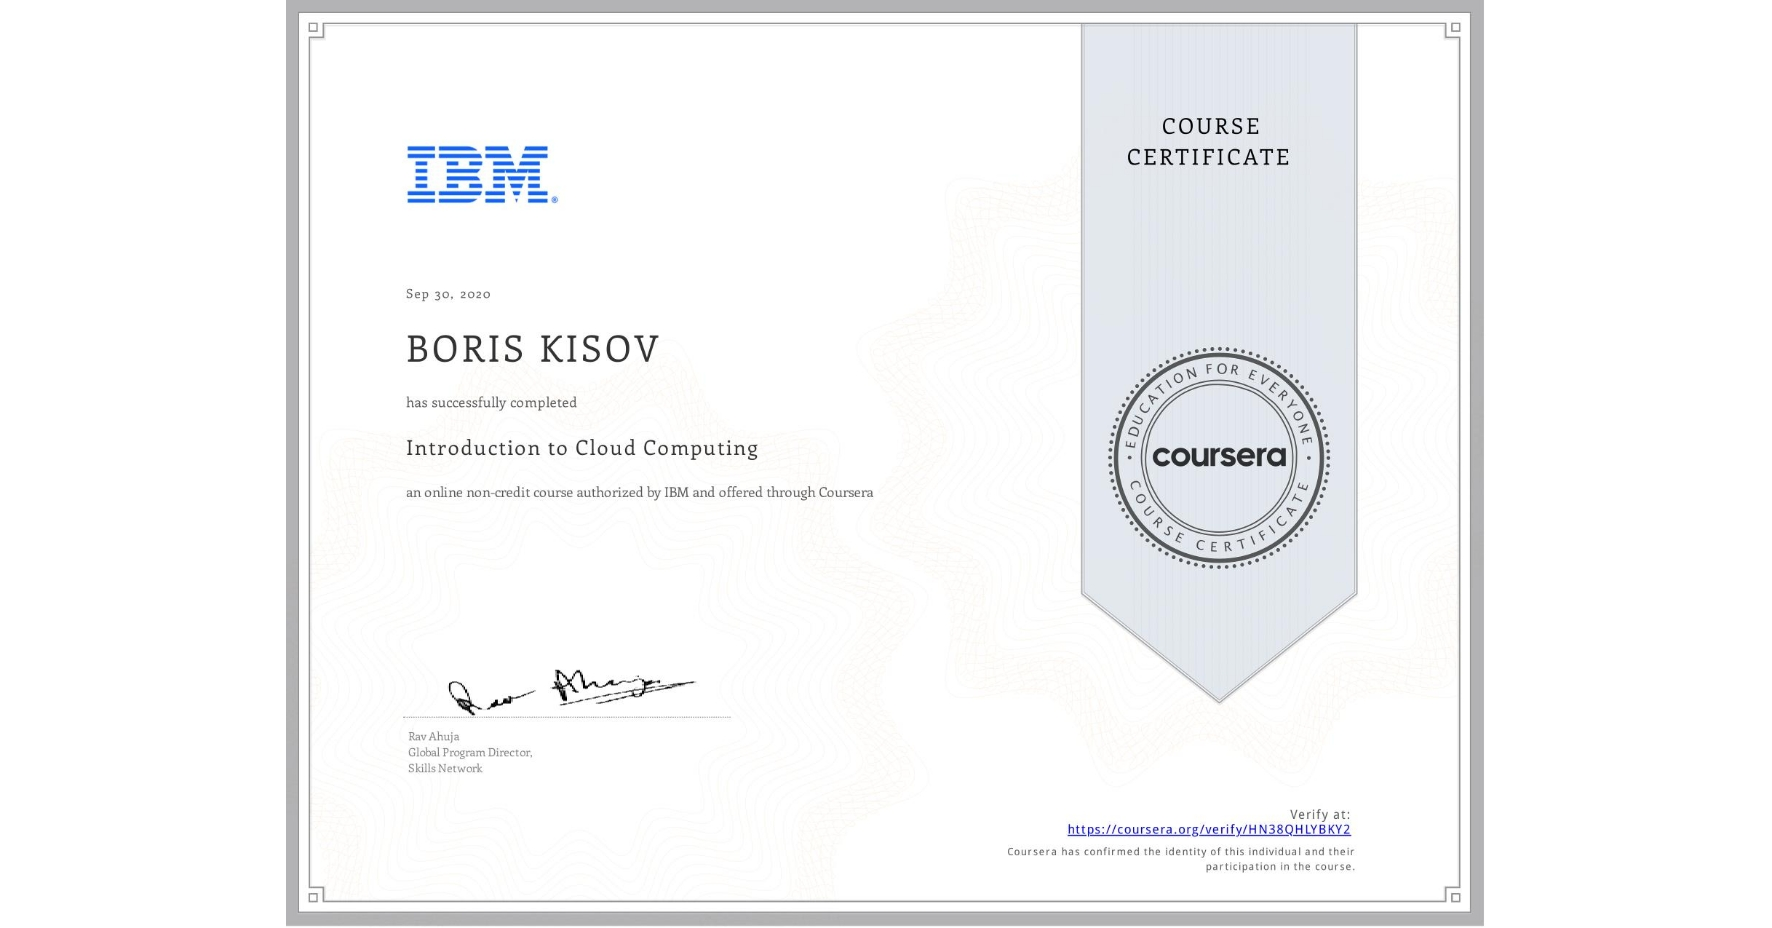 View certificate for BORIS KISOV, Introduction to Cloud Computing, an online non-credit course authorized by IBM and offered through Coursera